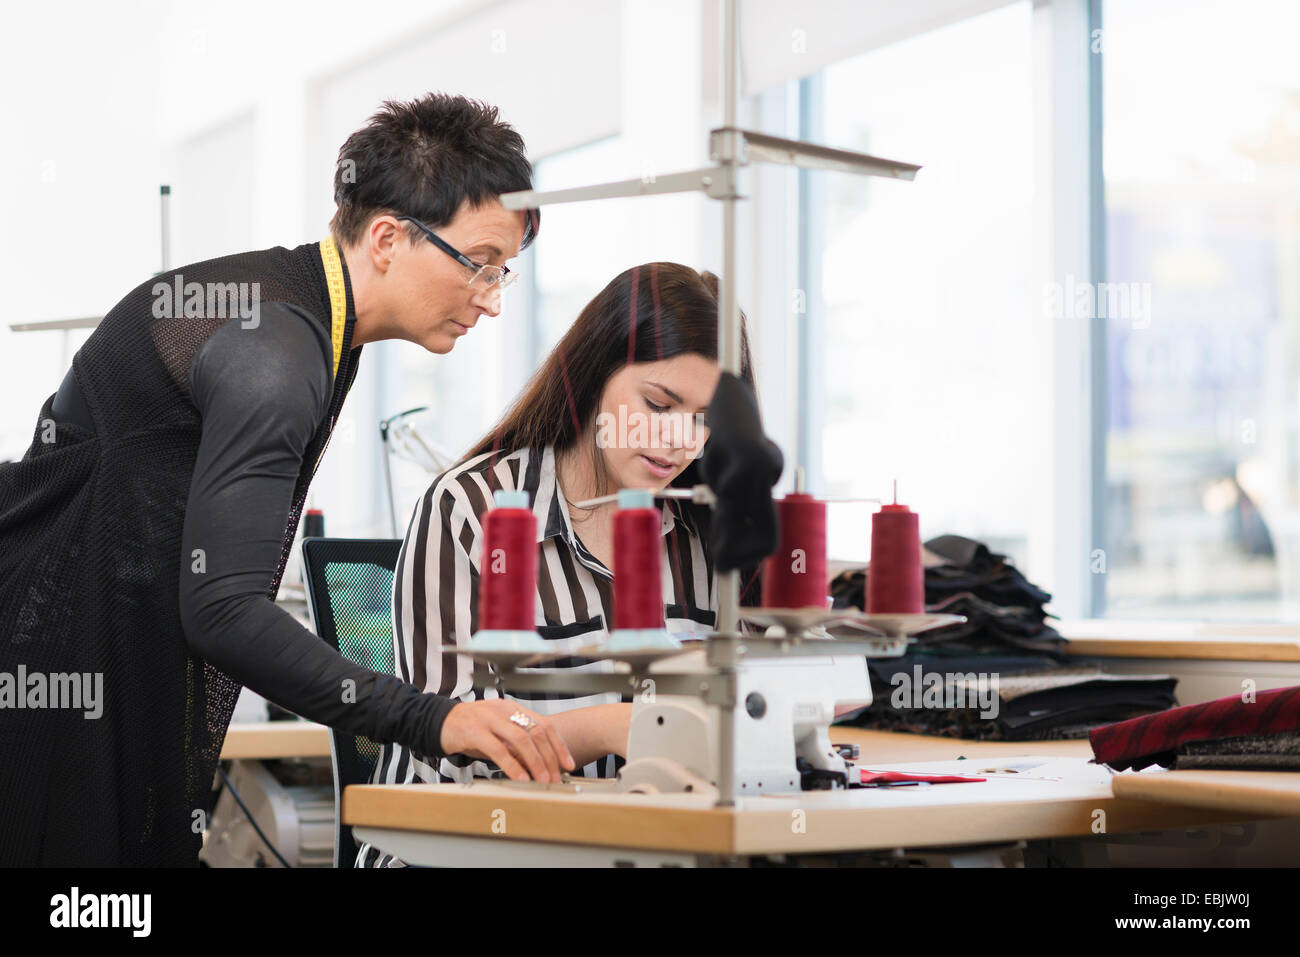 Two seamstresses looking down at sewing machine in workshop - Stock Image